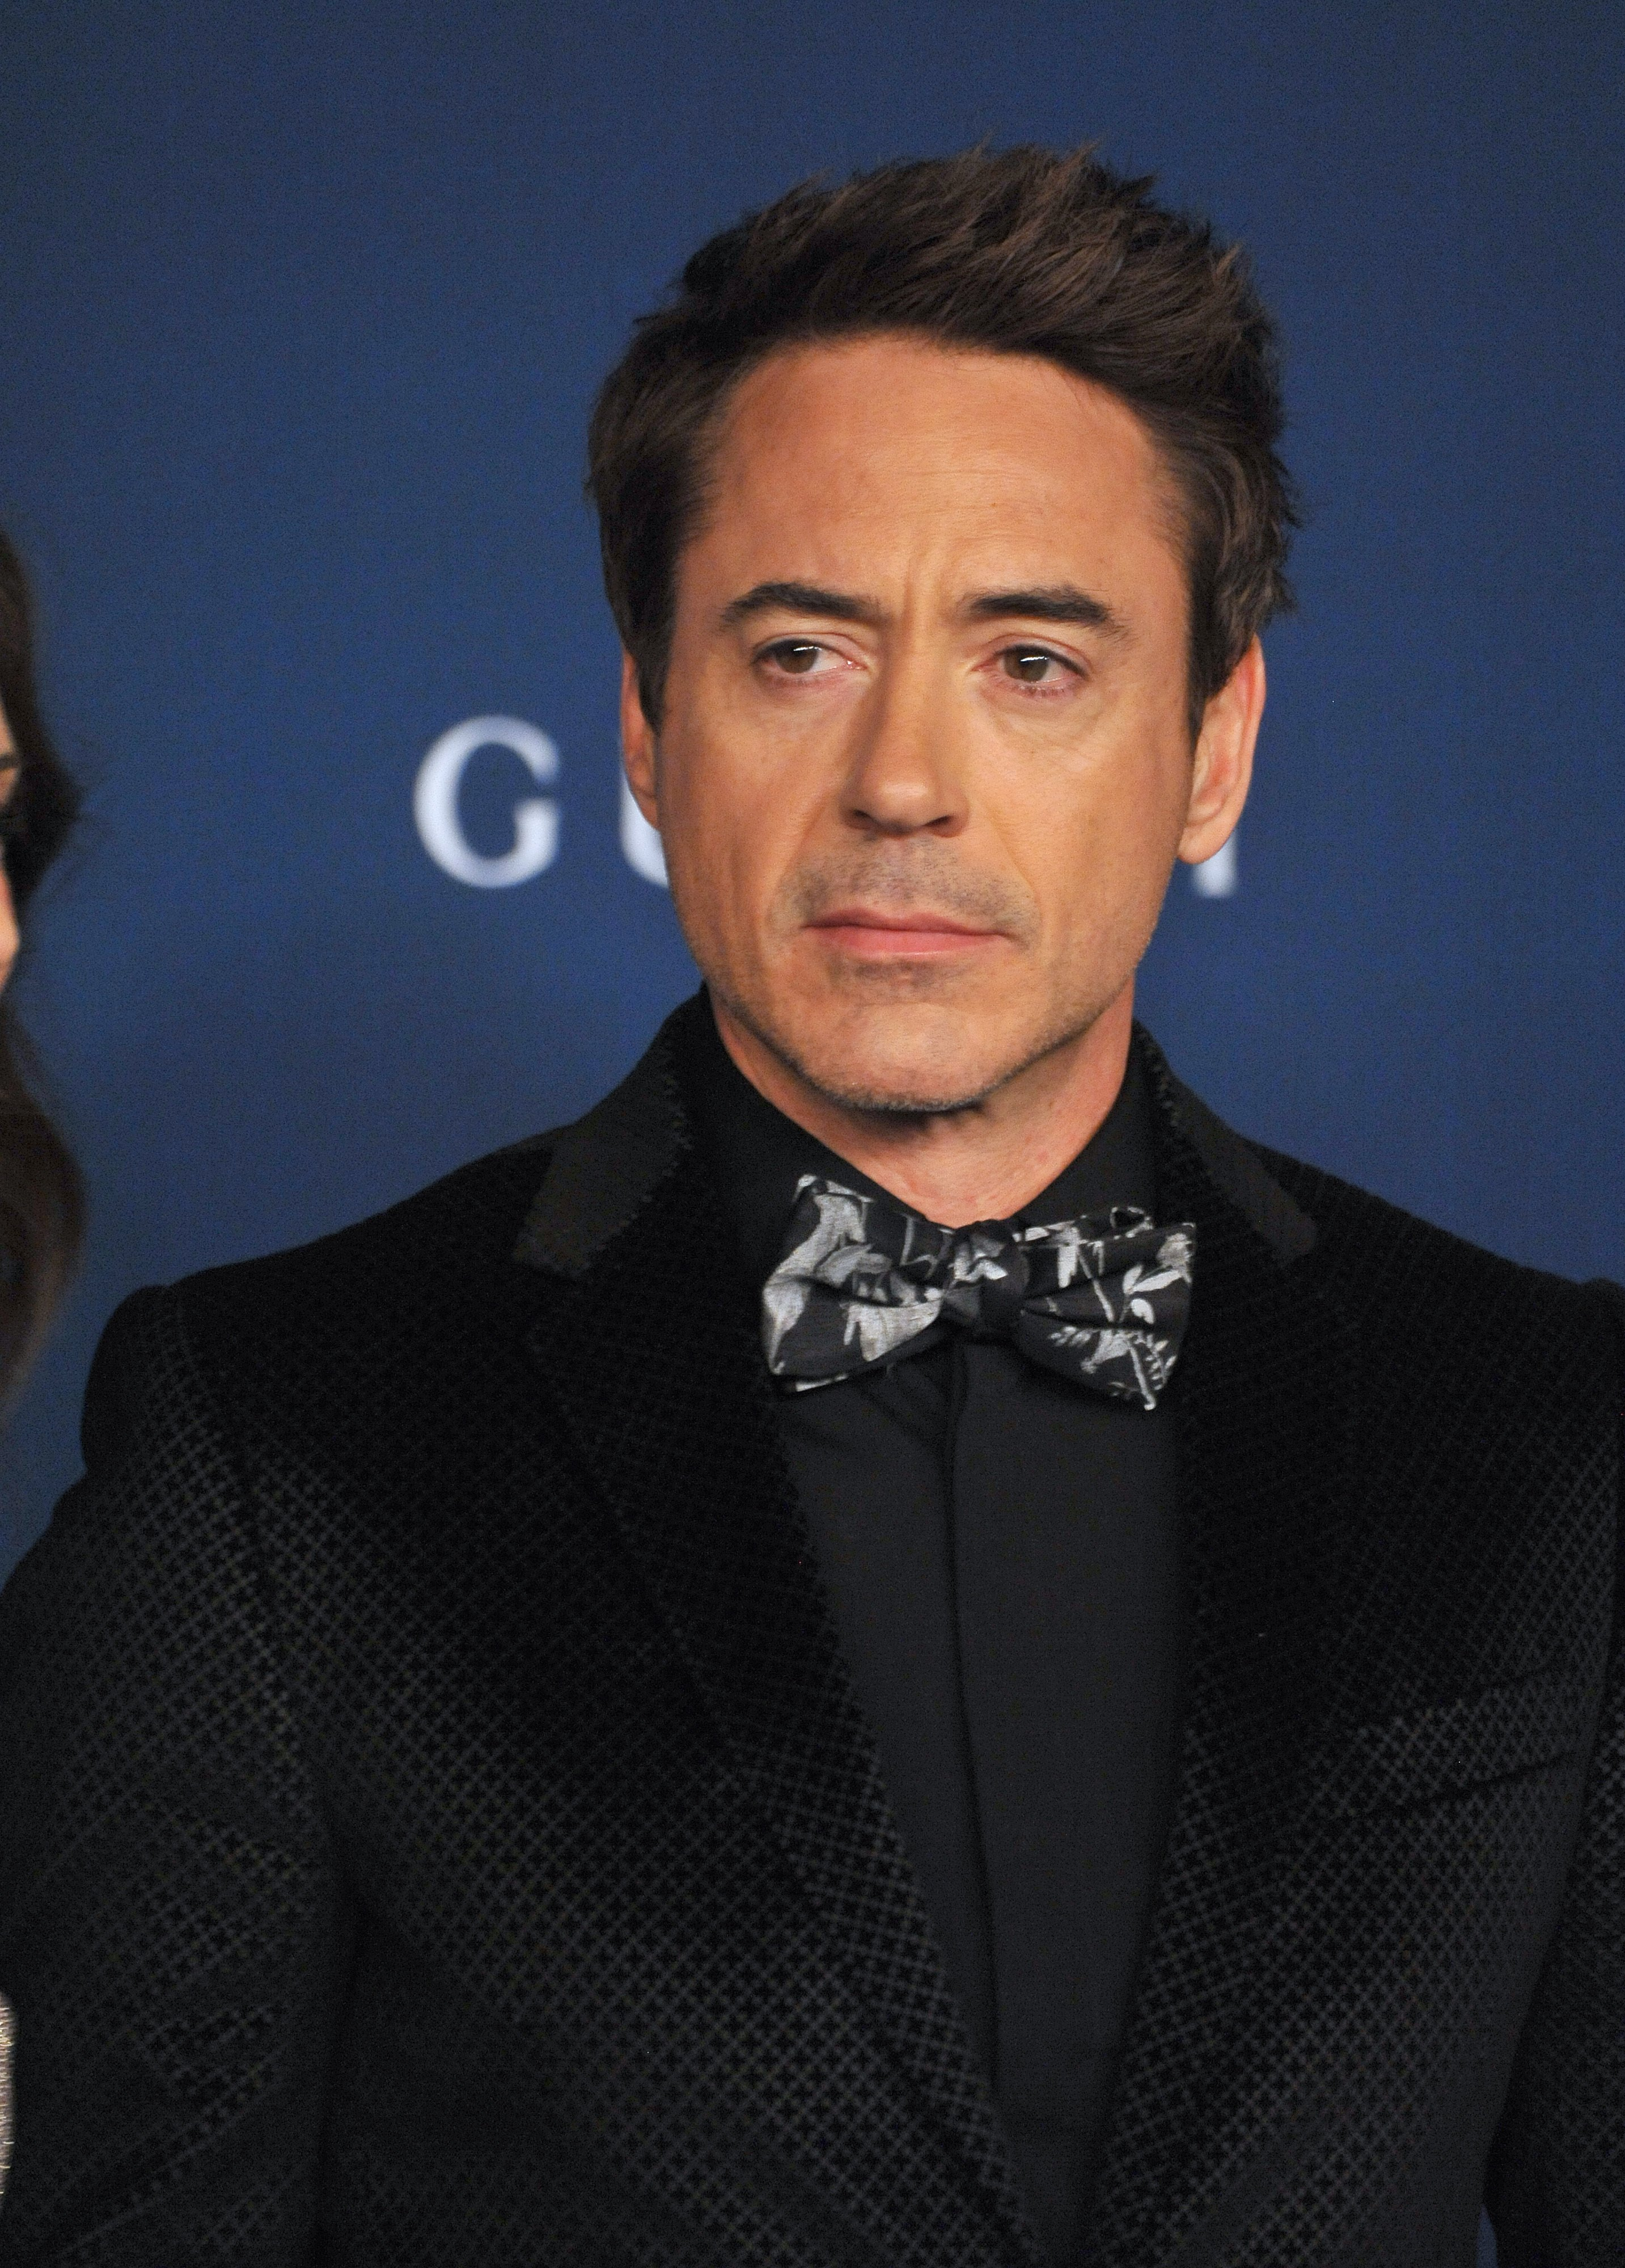 Robert Downey Jr at the LACMA Art+Film Gala at the Los Angeles County Museum of Art on November 2, 2013 in California | Photo: Shutterstock